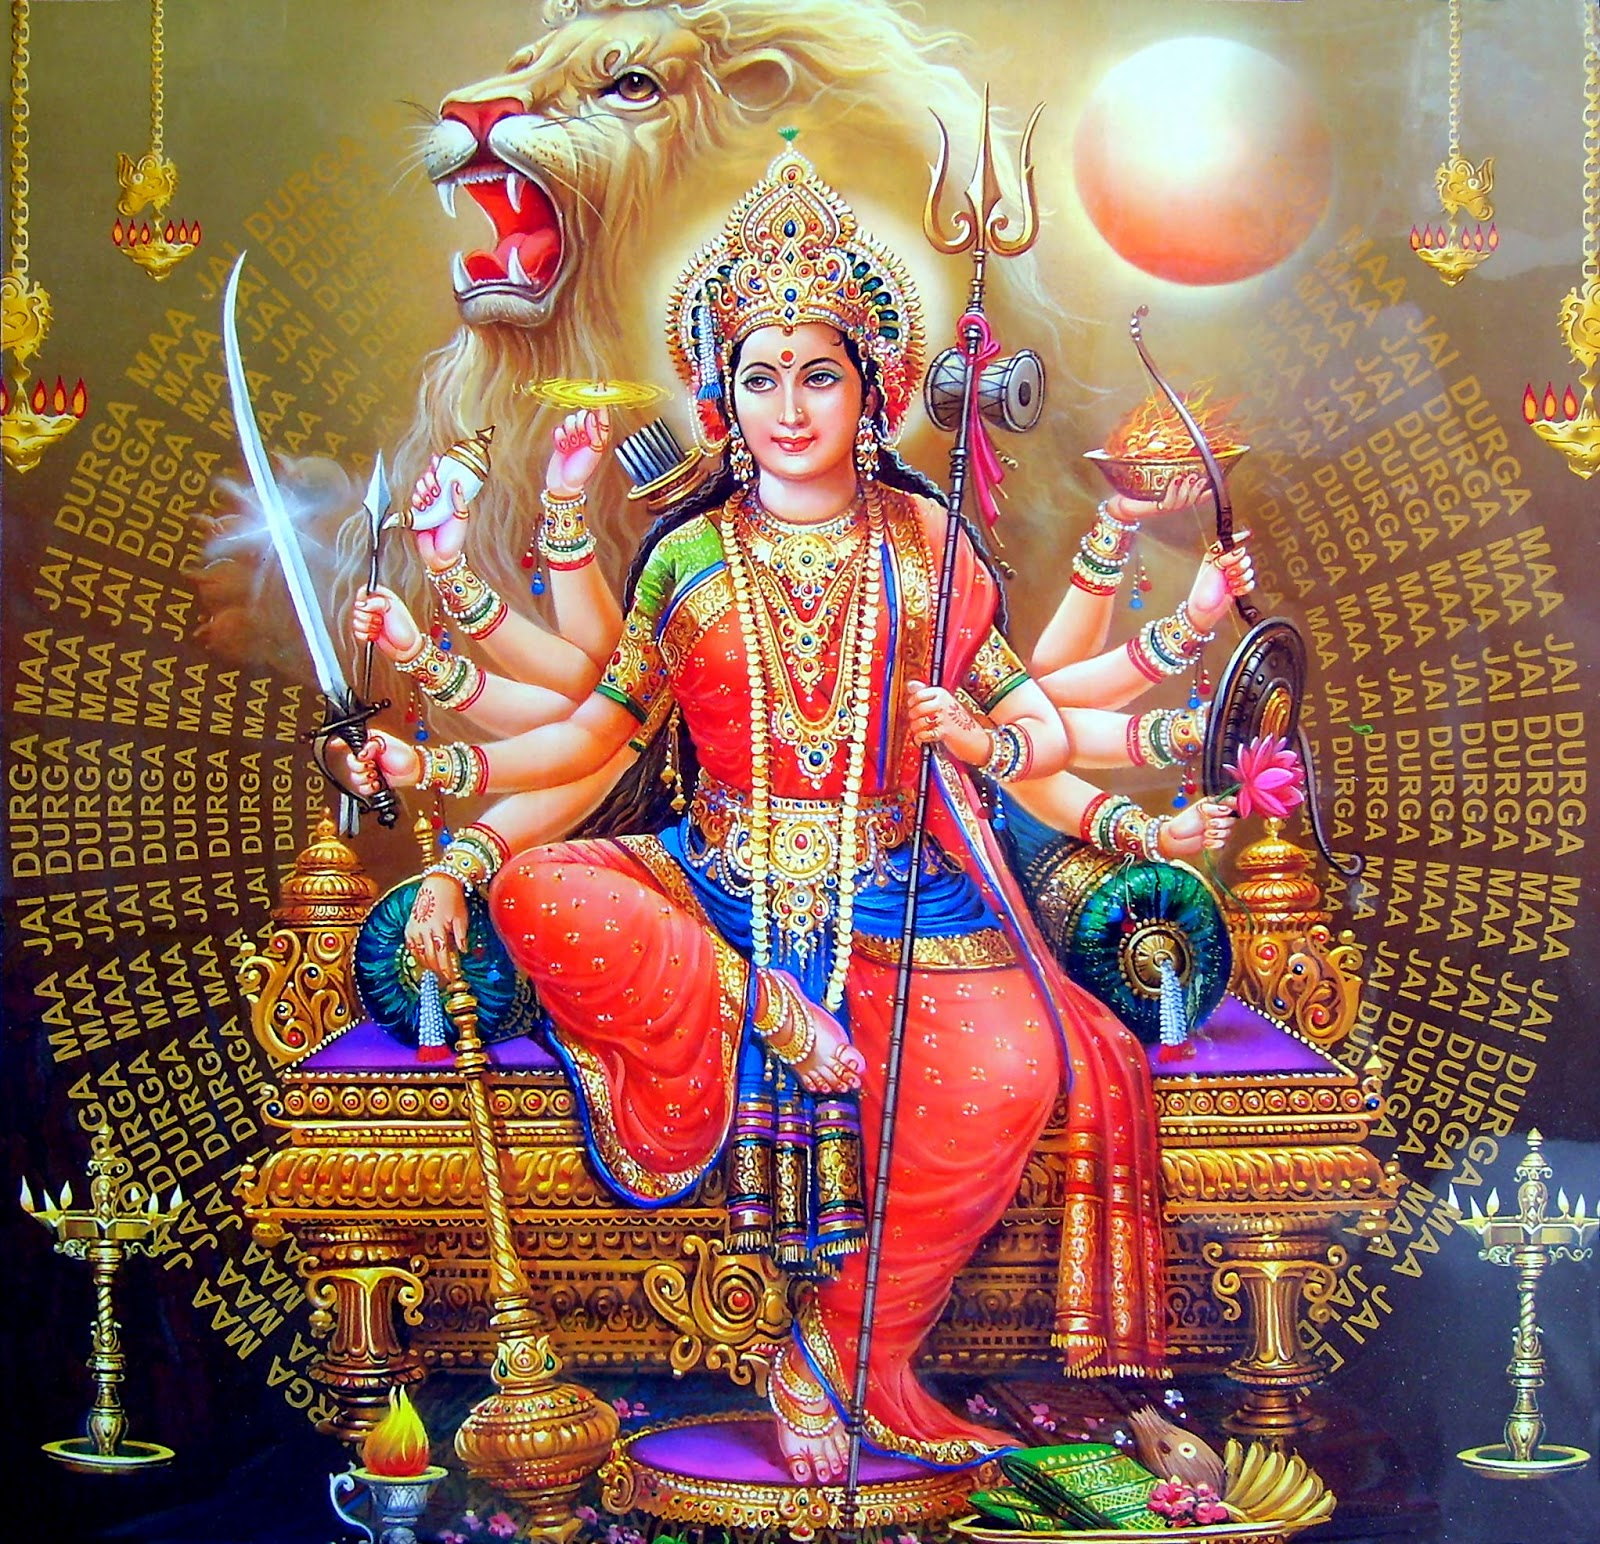 PunjabKesari, Dussehra 2020, Devi Aparajita, Dussehra 2020 Devi Aparajita, Devi Aparajita Worship, Devi Aparajita Worship Vidhi in hindi, Devi Aparajita Worship Vidhi, Pujan Vidhi Of Jaya Vijaya, Mantra Bhajan Aarti, Vedic Mantra in Hindi, Hindi Fast And Festival